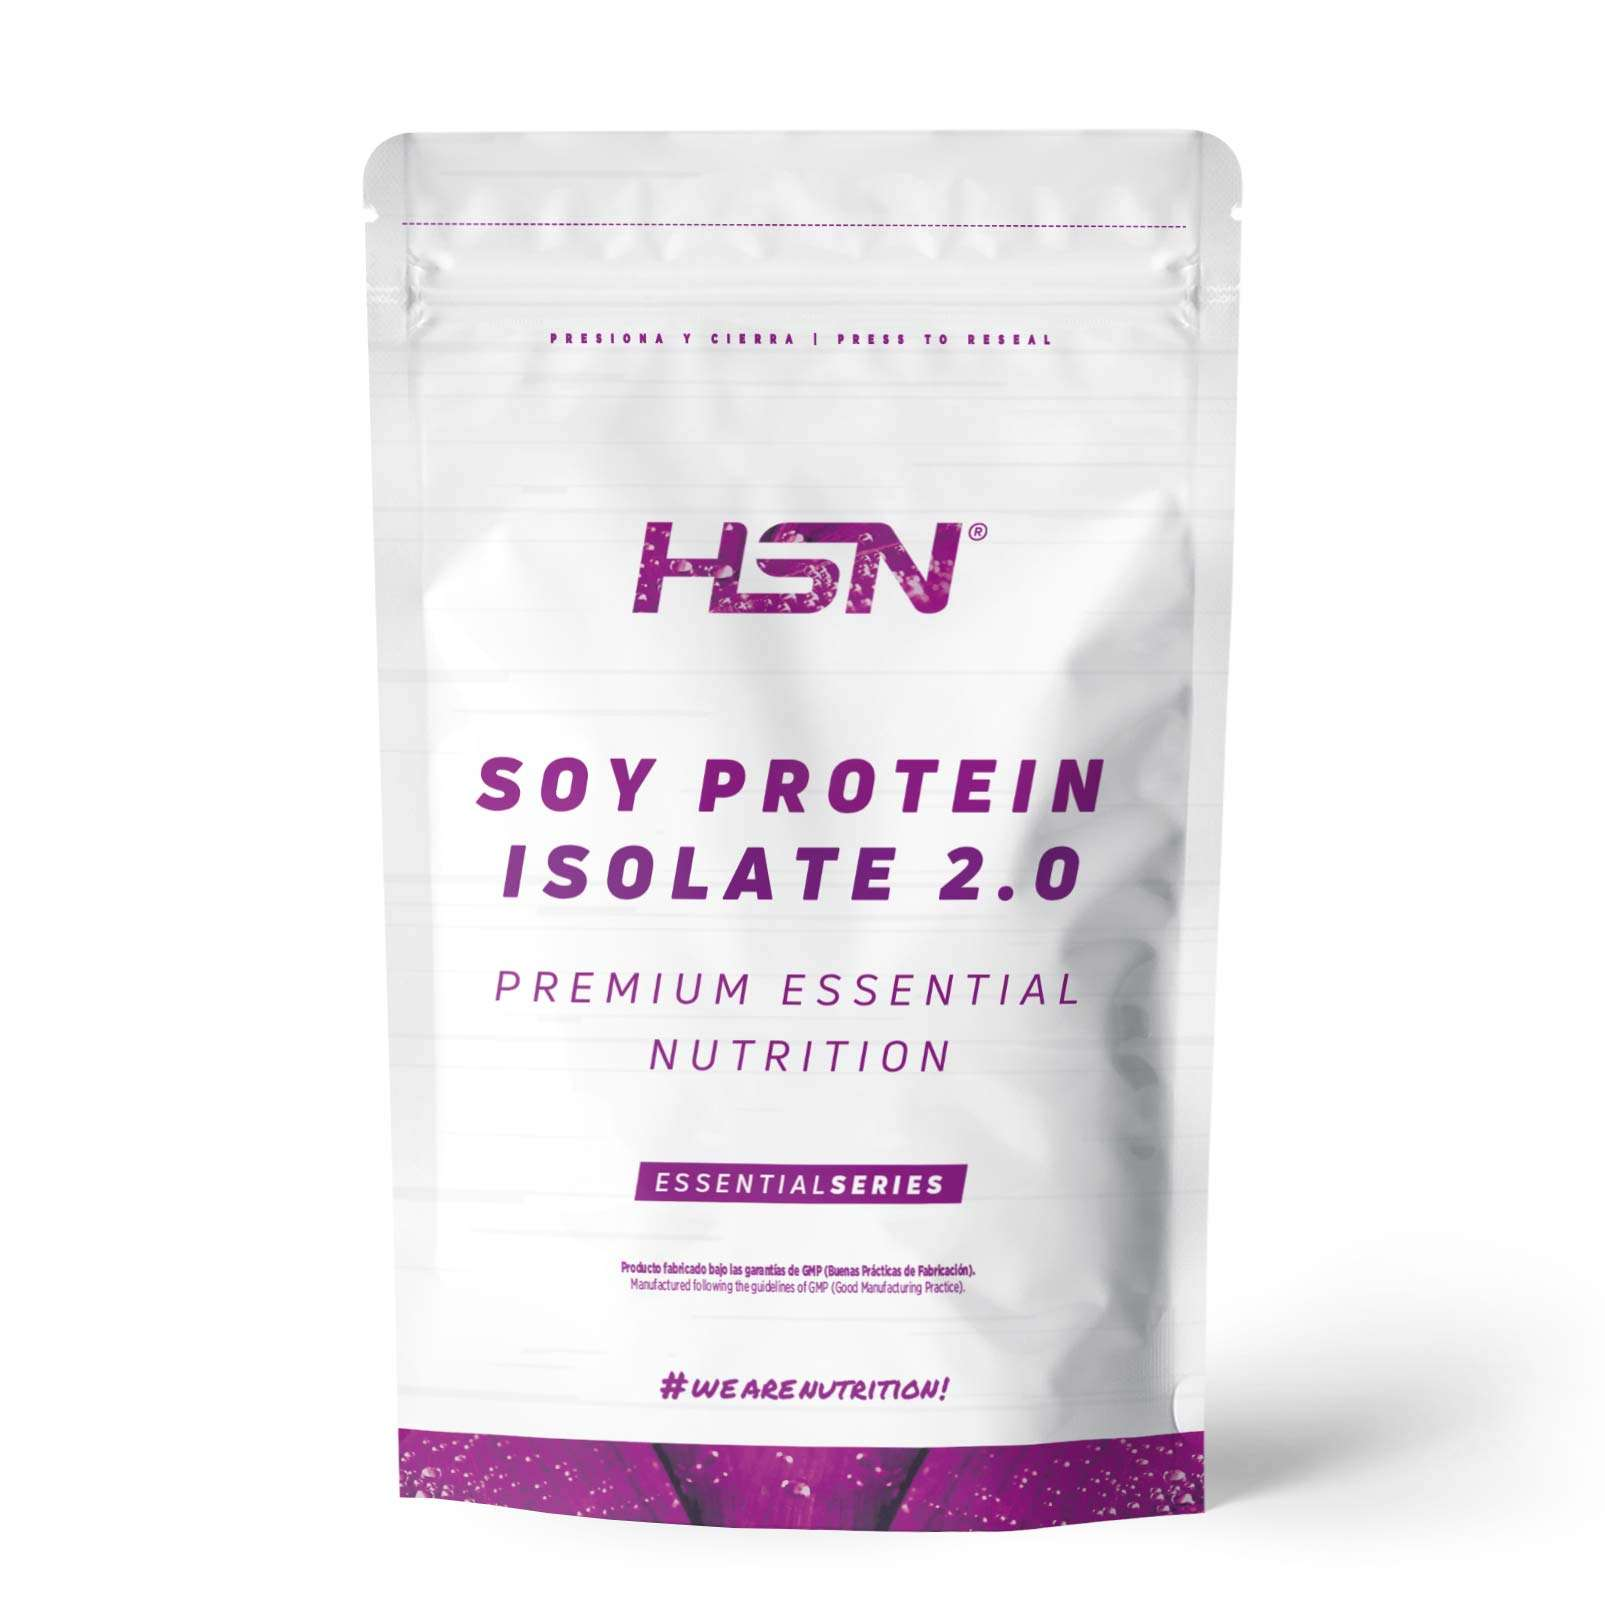 SOY PROTEIN ISOLATE 2.0